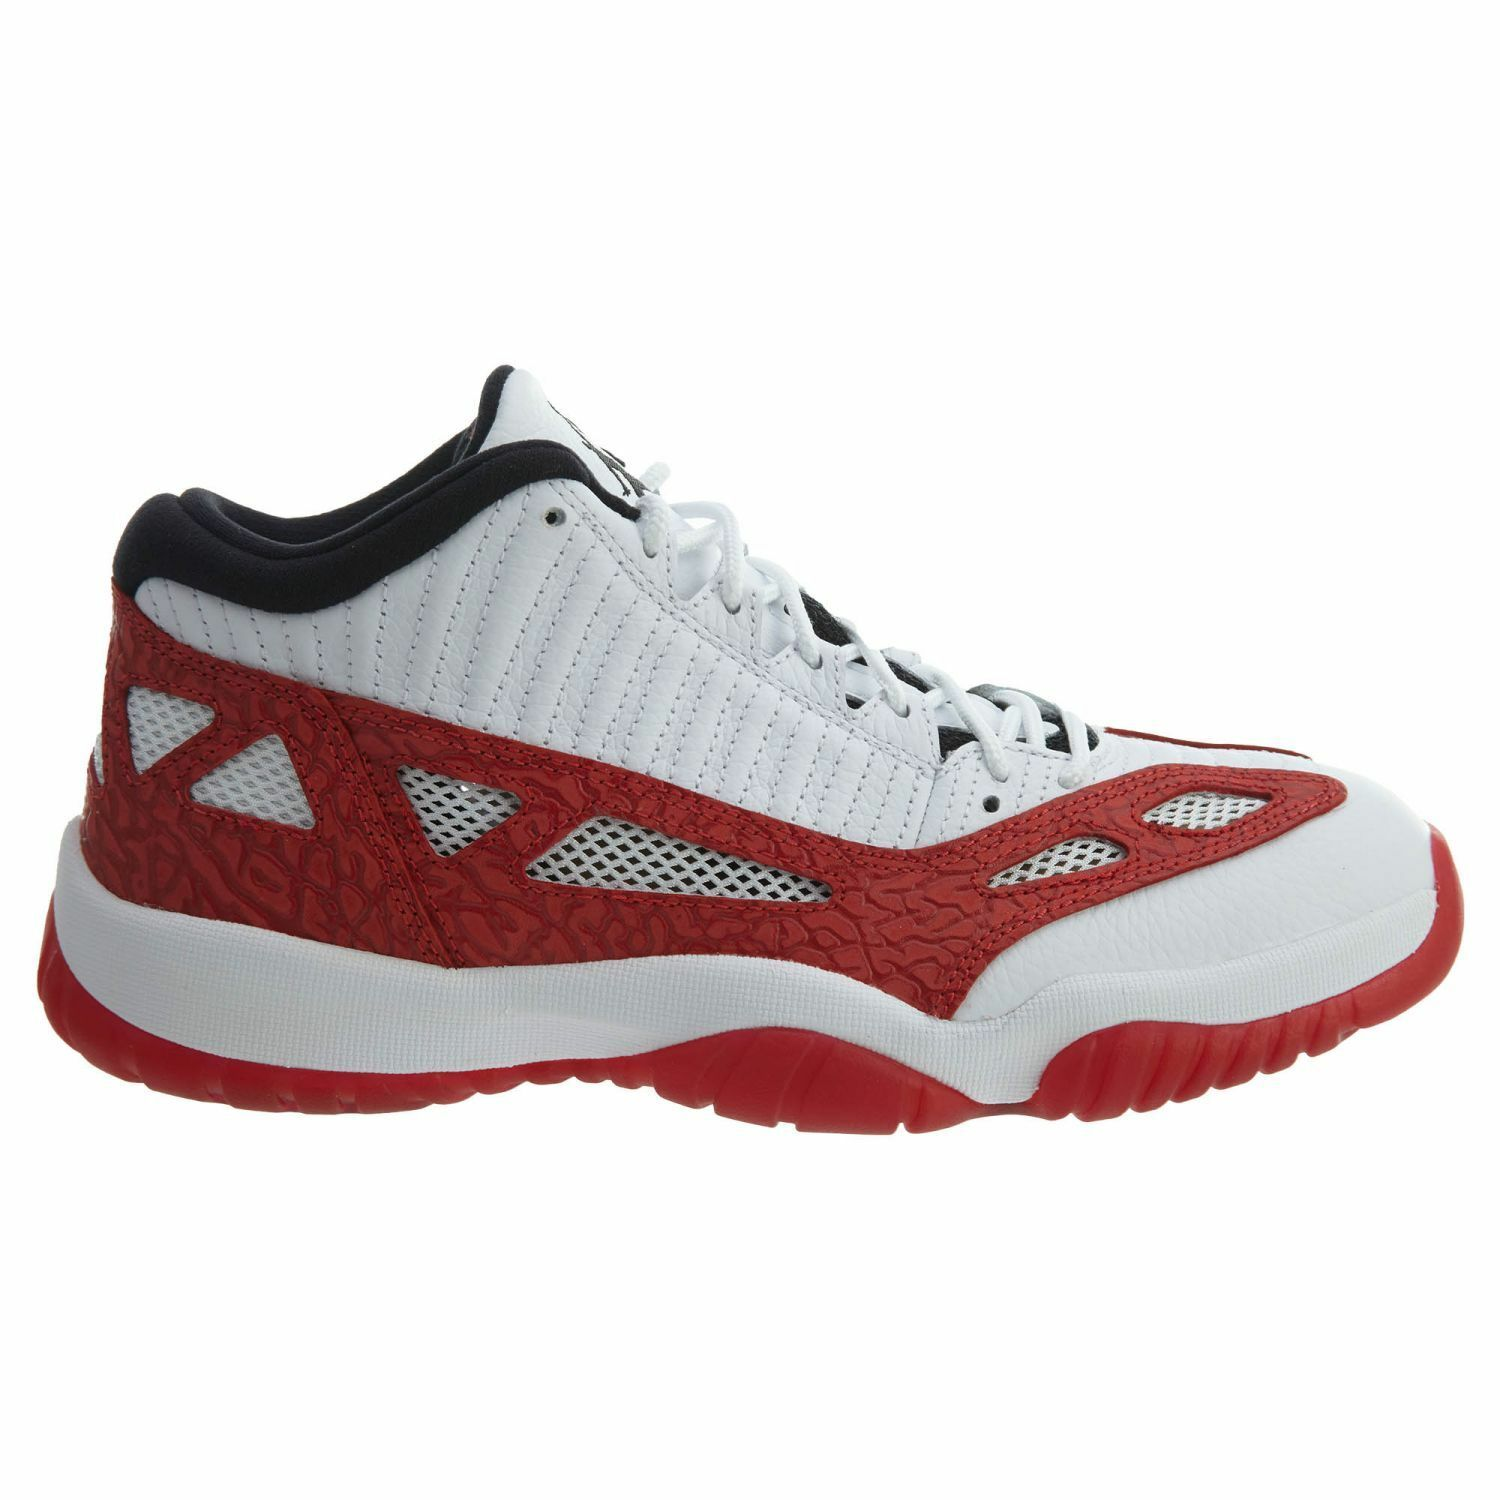 Air Jordan 11 11 11 Retro Low IE Uomo 919712-101 White Red Basketball Shoes Size 10.5 d05522